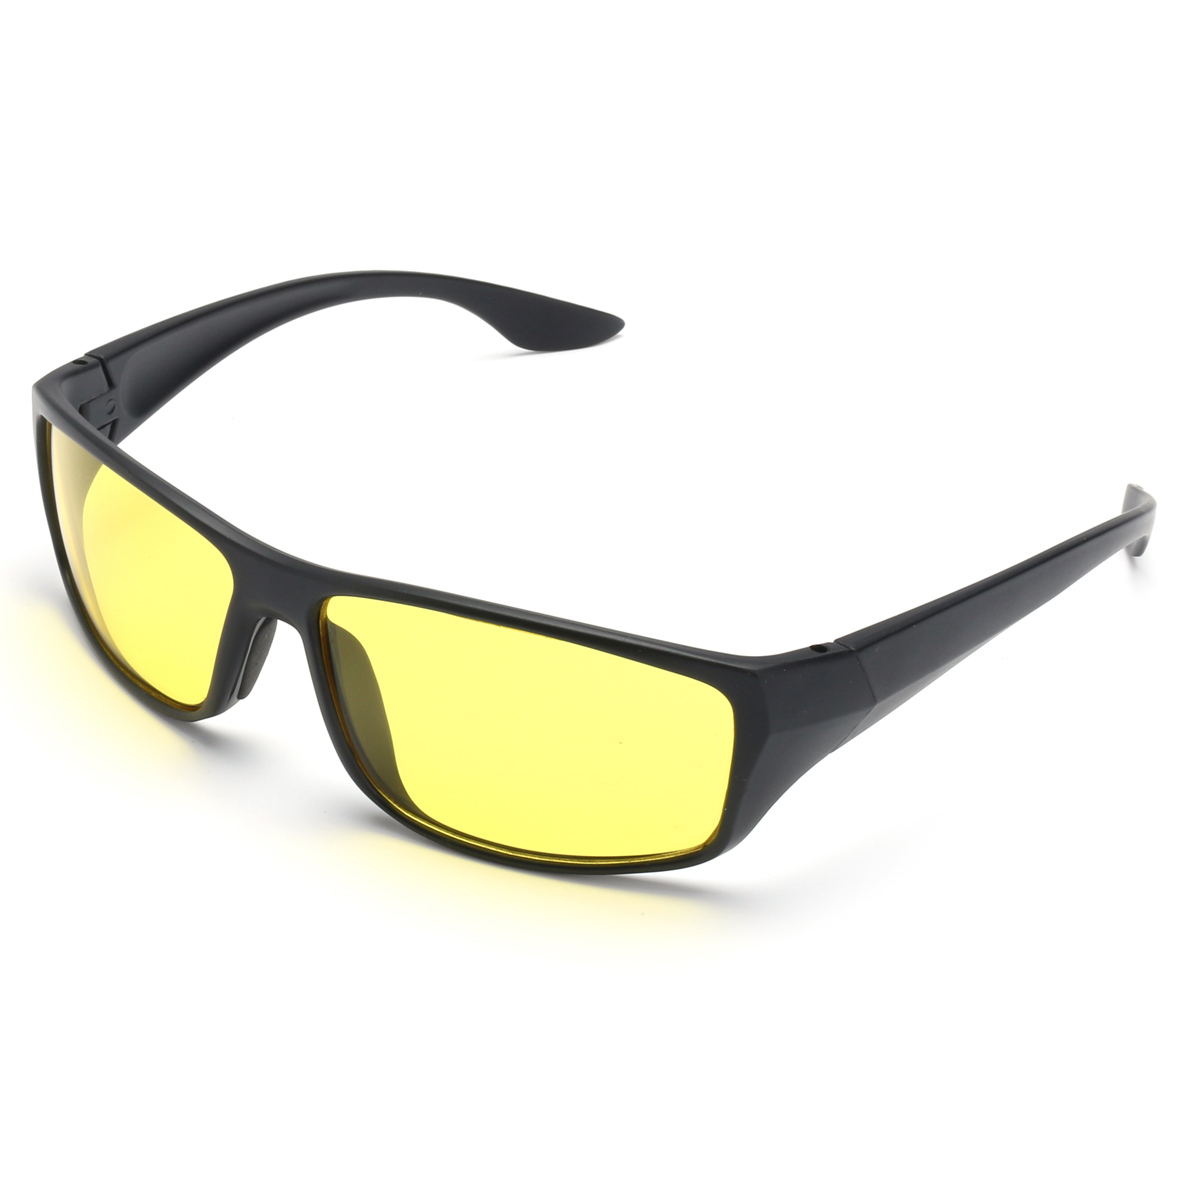 Night Driving Glasses Anti-Glare Night Vision Driver Safety UV Protection Sunglasses